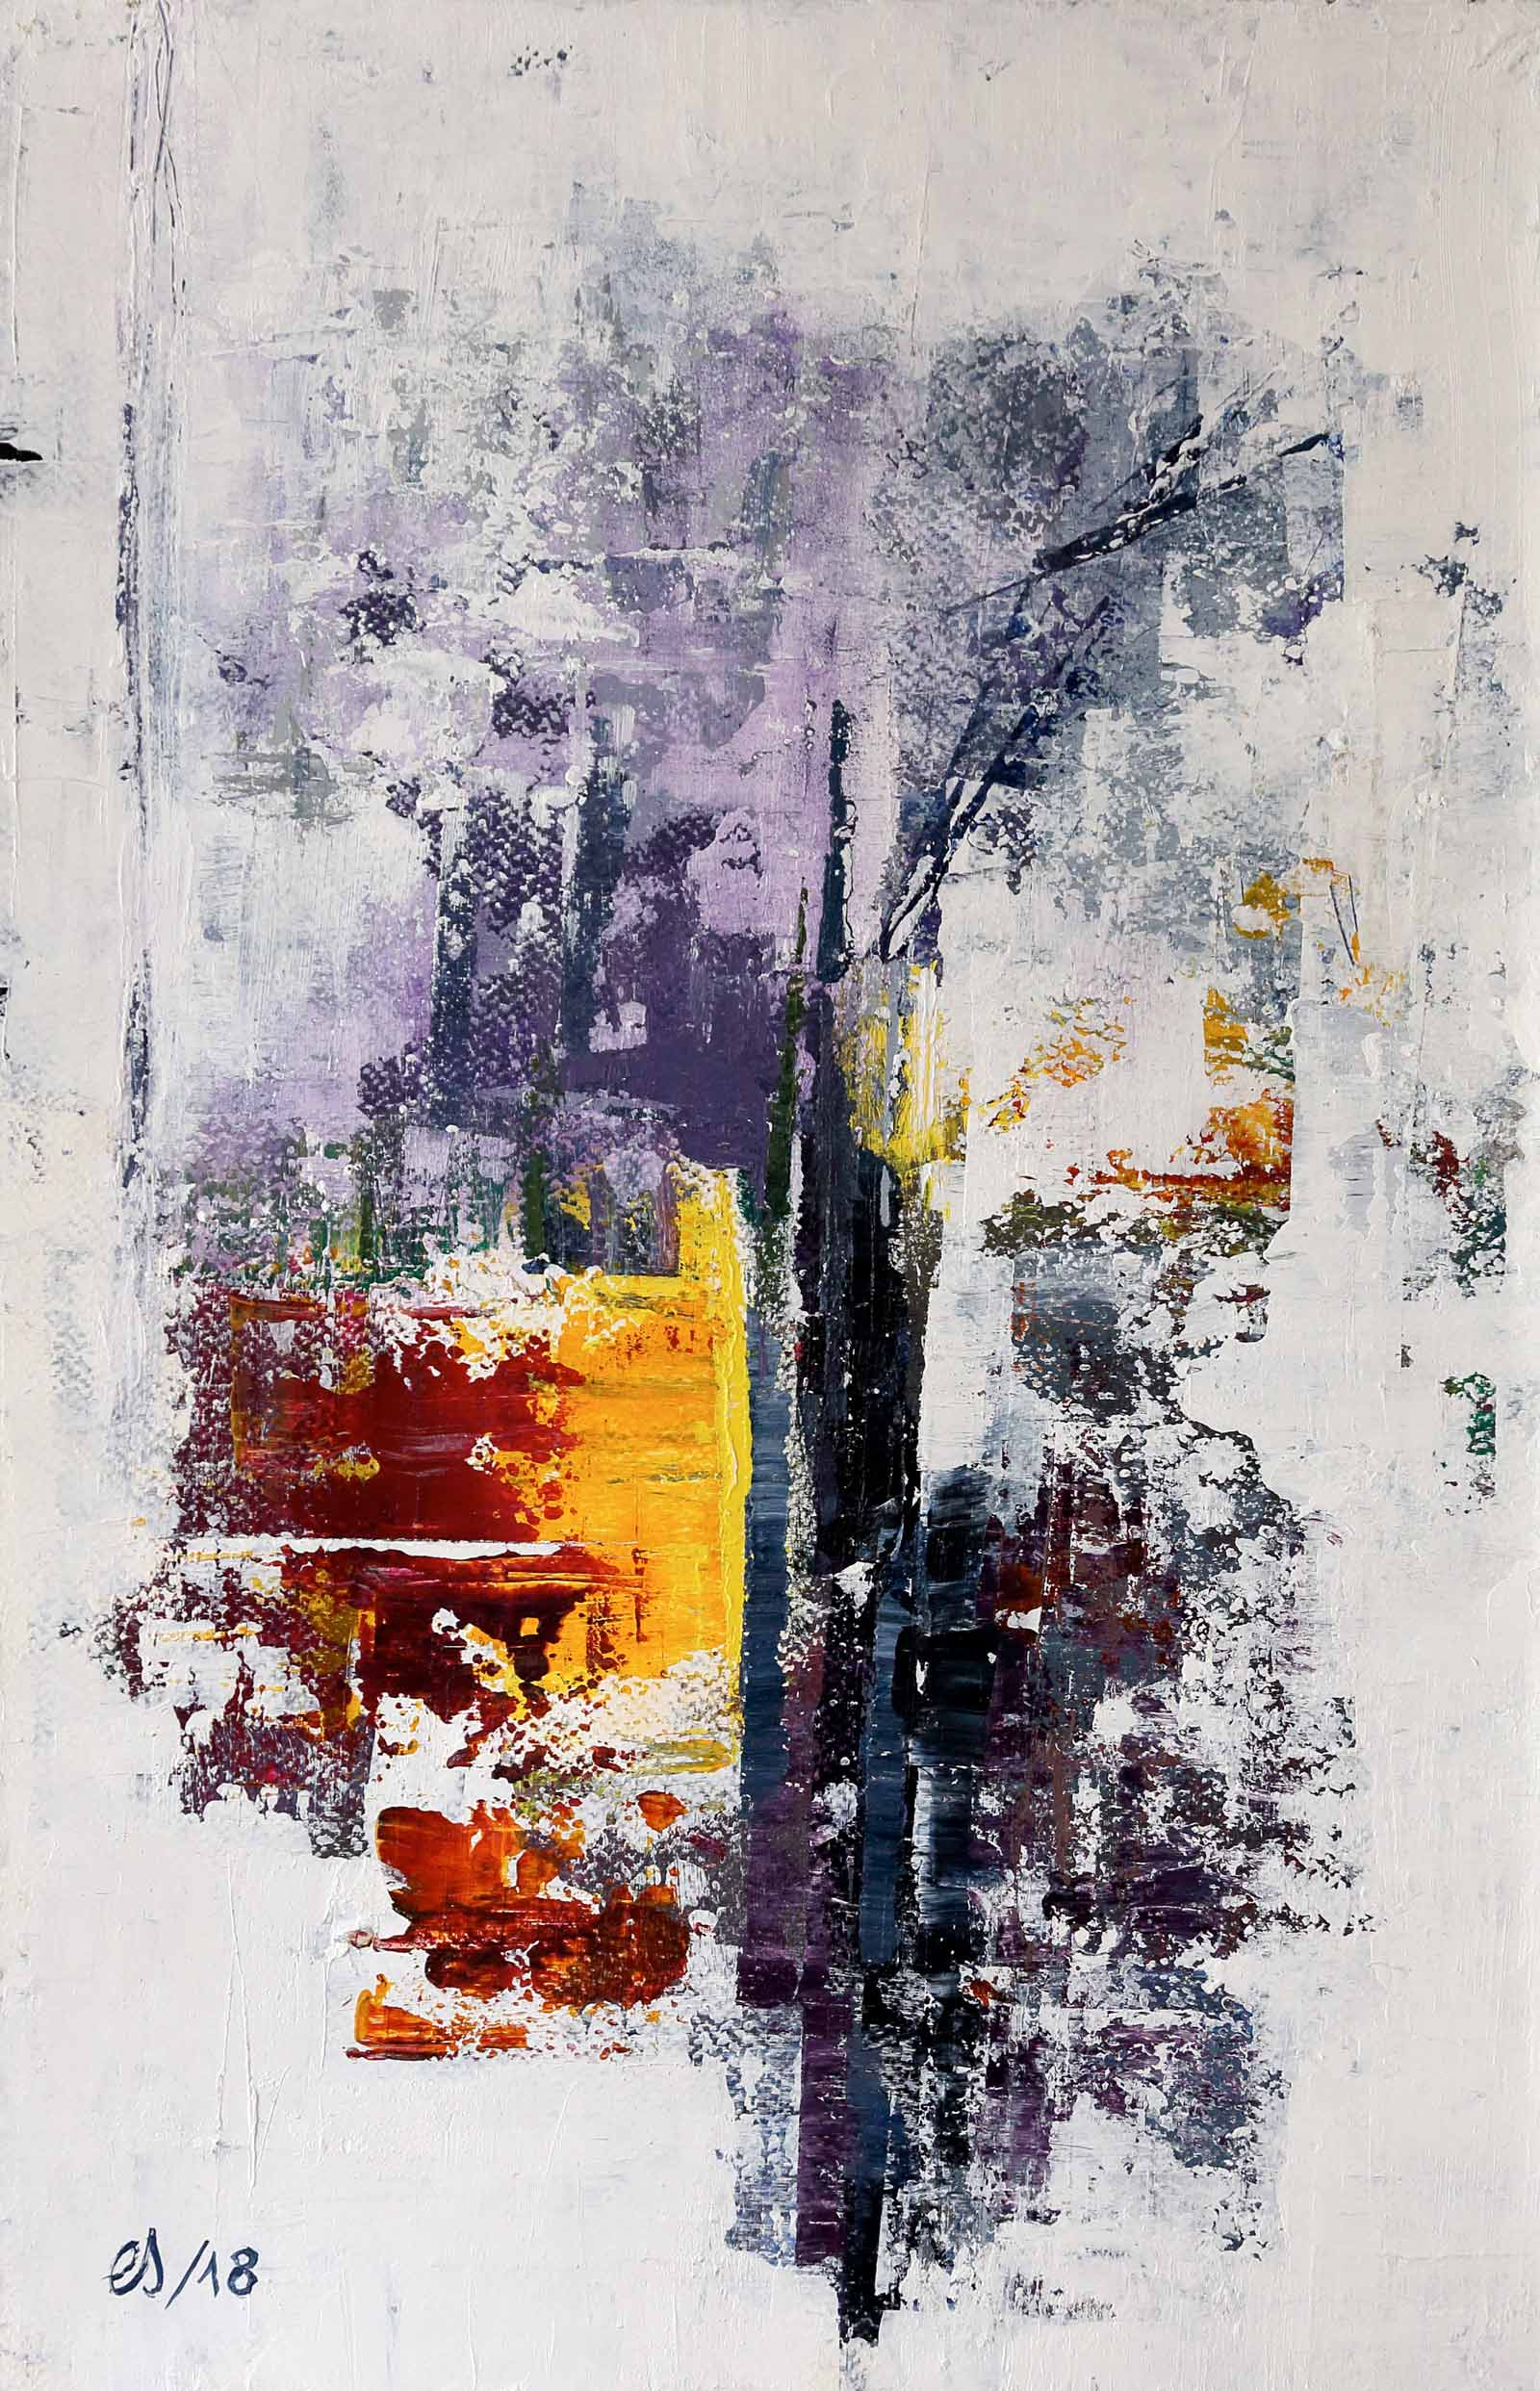 Emmanuelle Siary - ABSTRACT 5 (2018 - 50X32 - Acrylique sur toile)